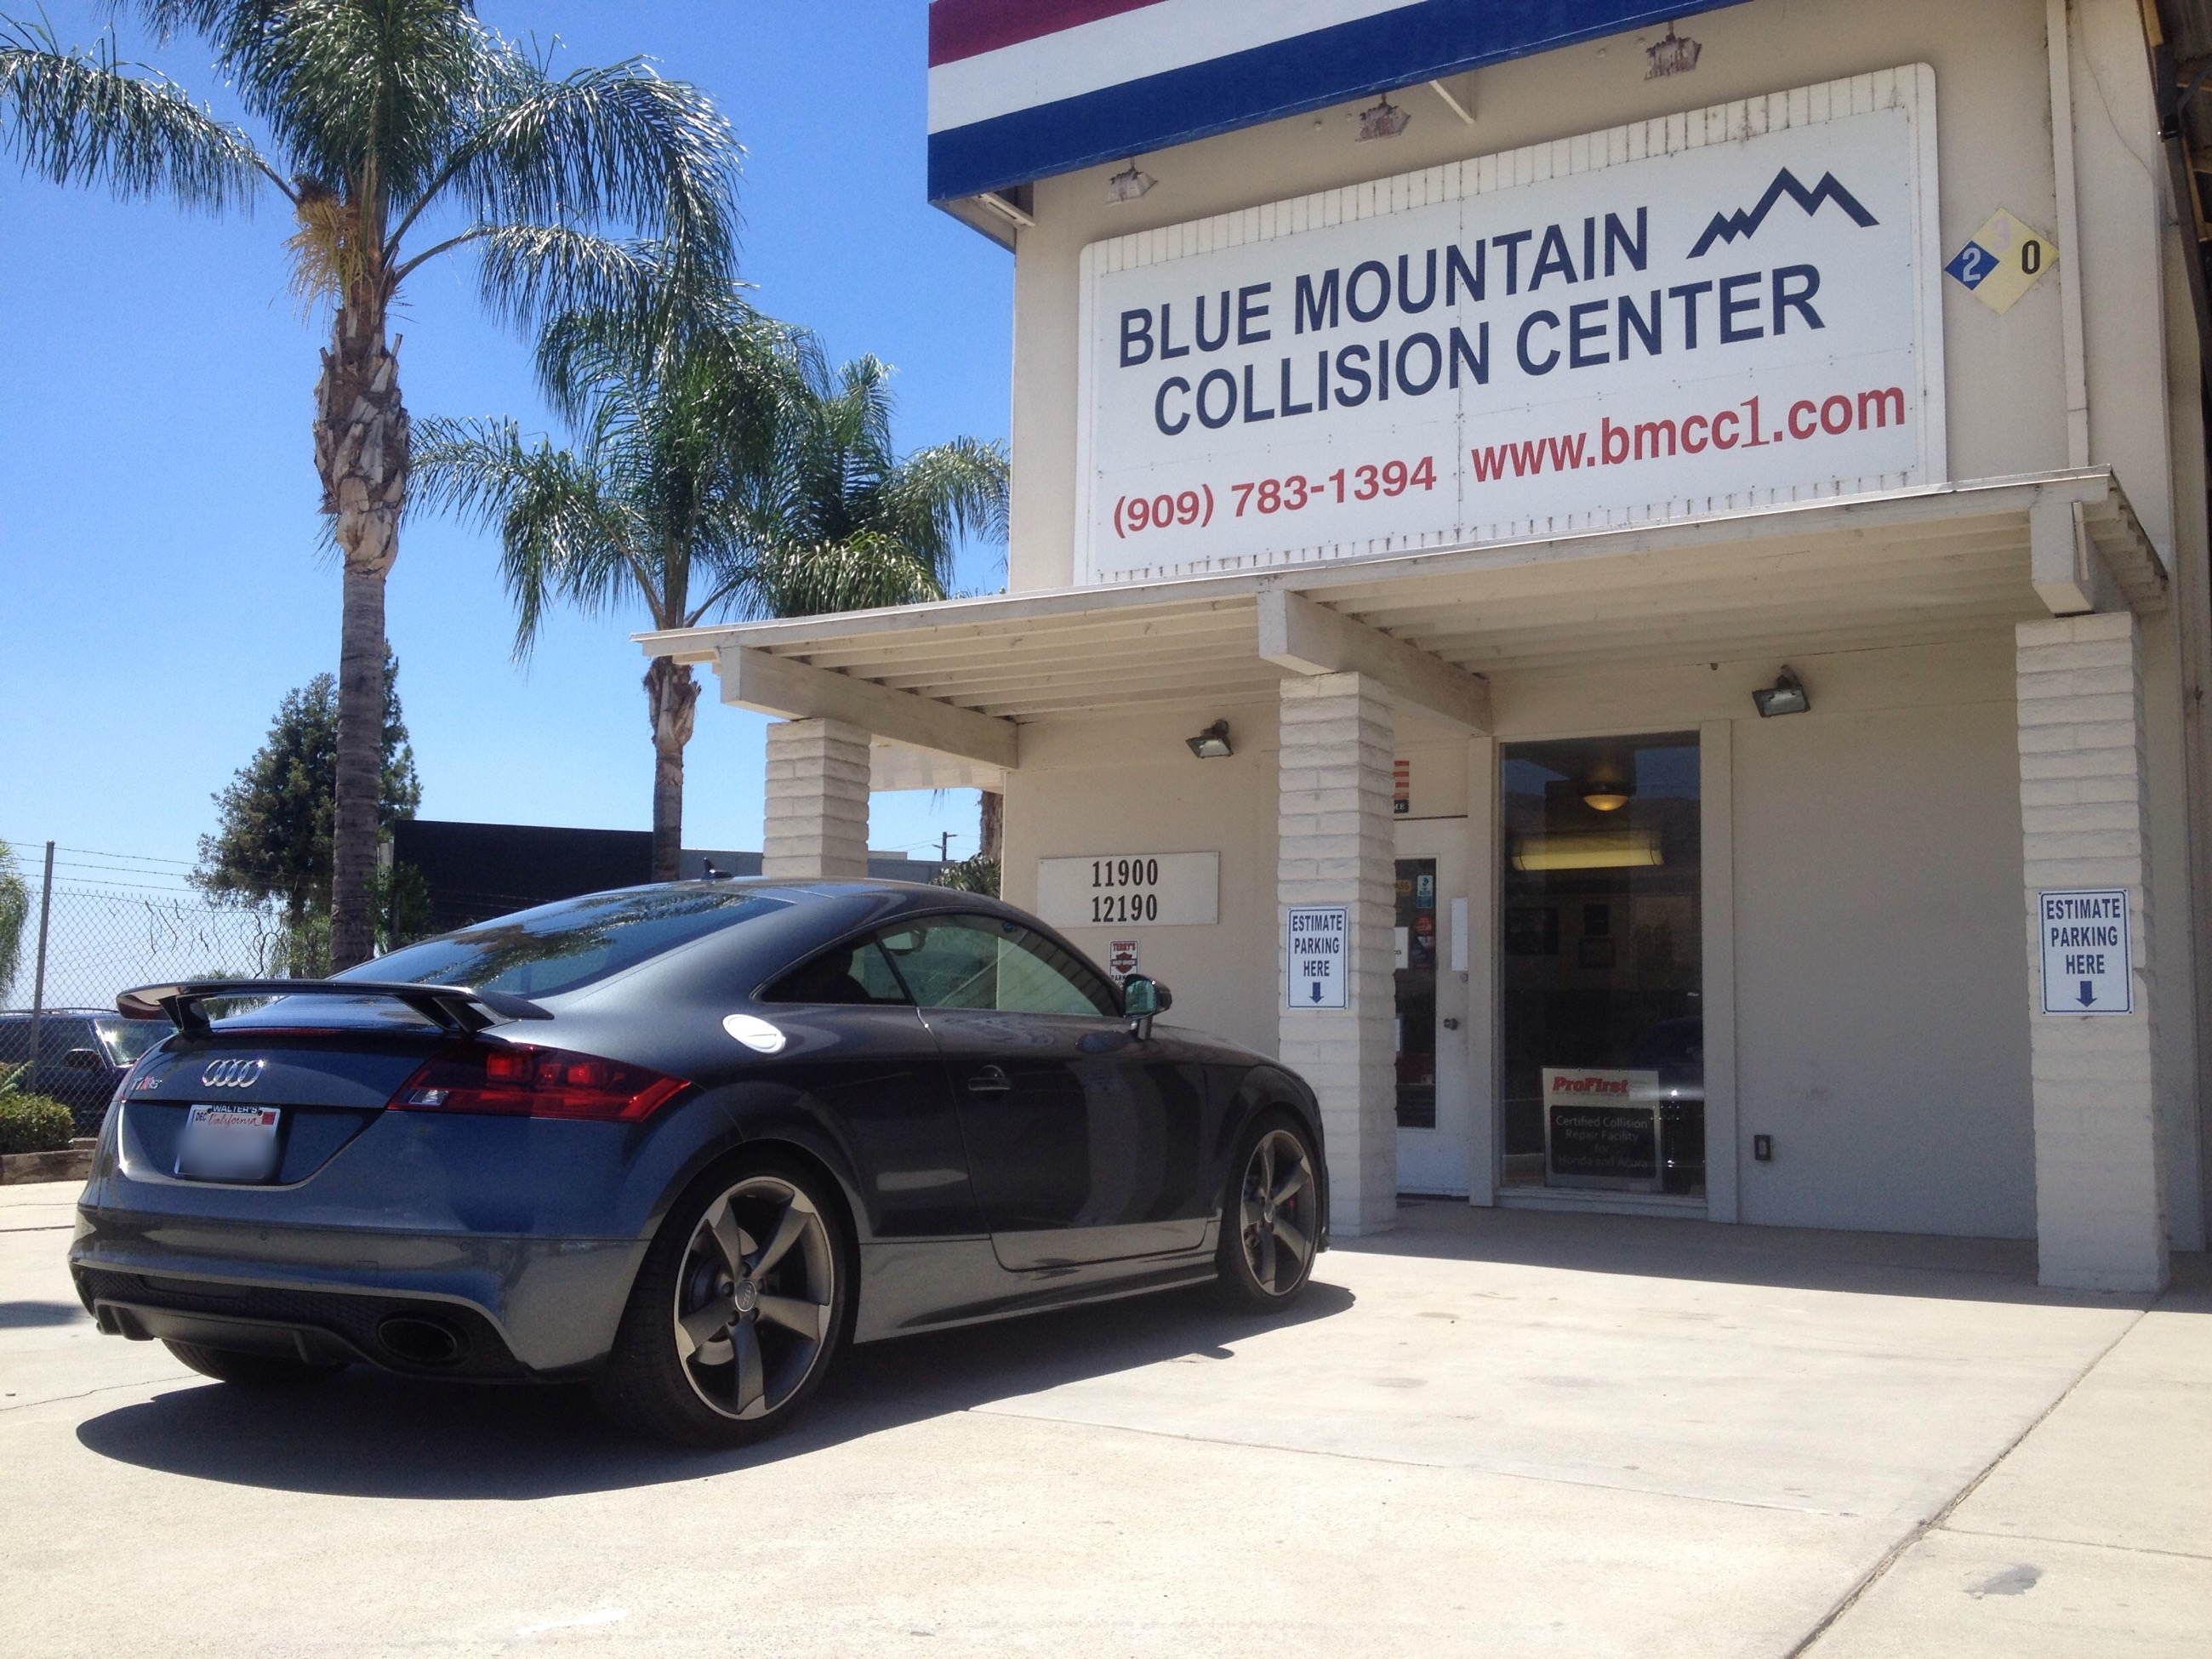 Blue Mountain Collision Center - Grand Terrace, CA